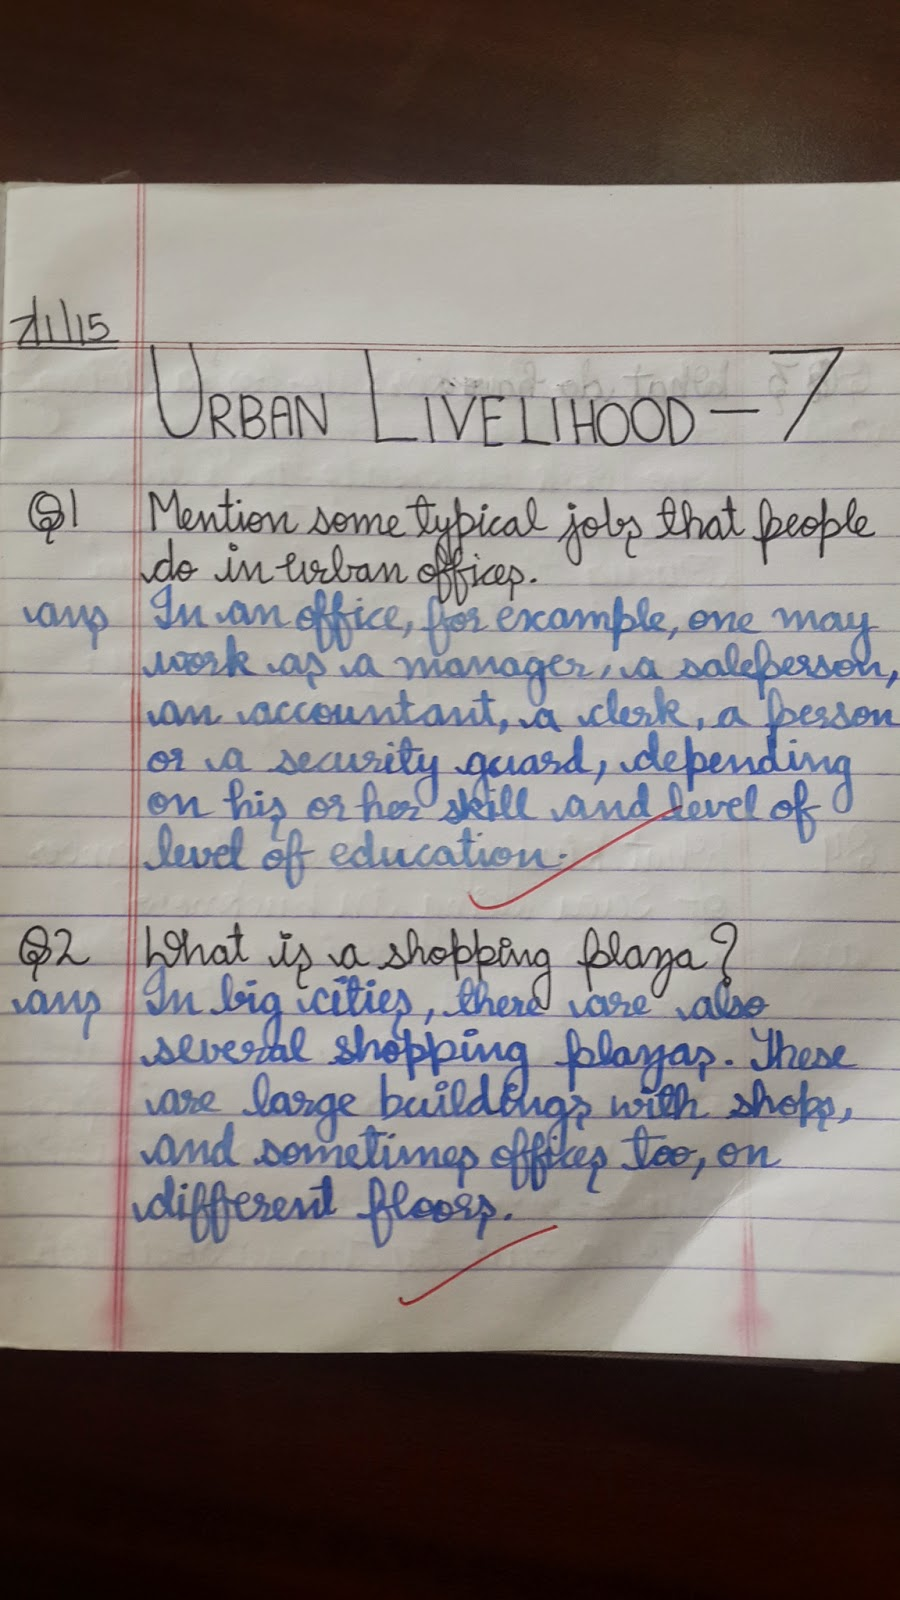 urban livelihood An urban area or urban agglomeration is a human settlement with high population density and infrastructure of built environment urban areas are created through urbanization and are categorized by urban morphology as cities, towns, conurbations or suburbs.